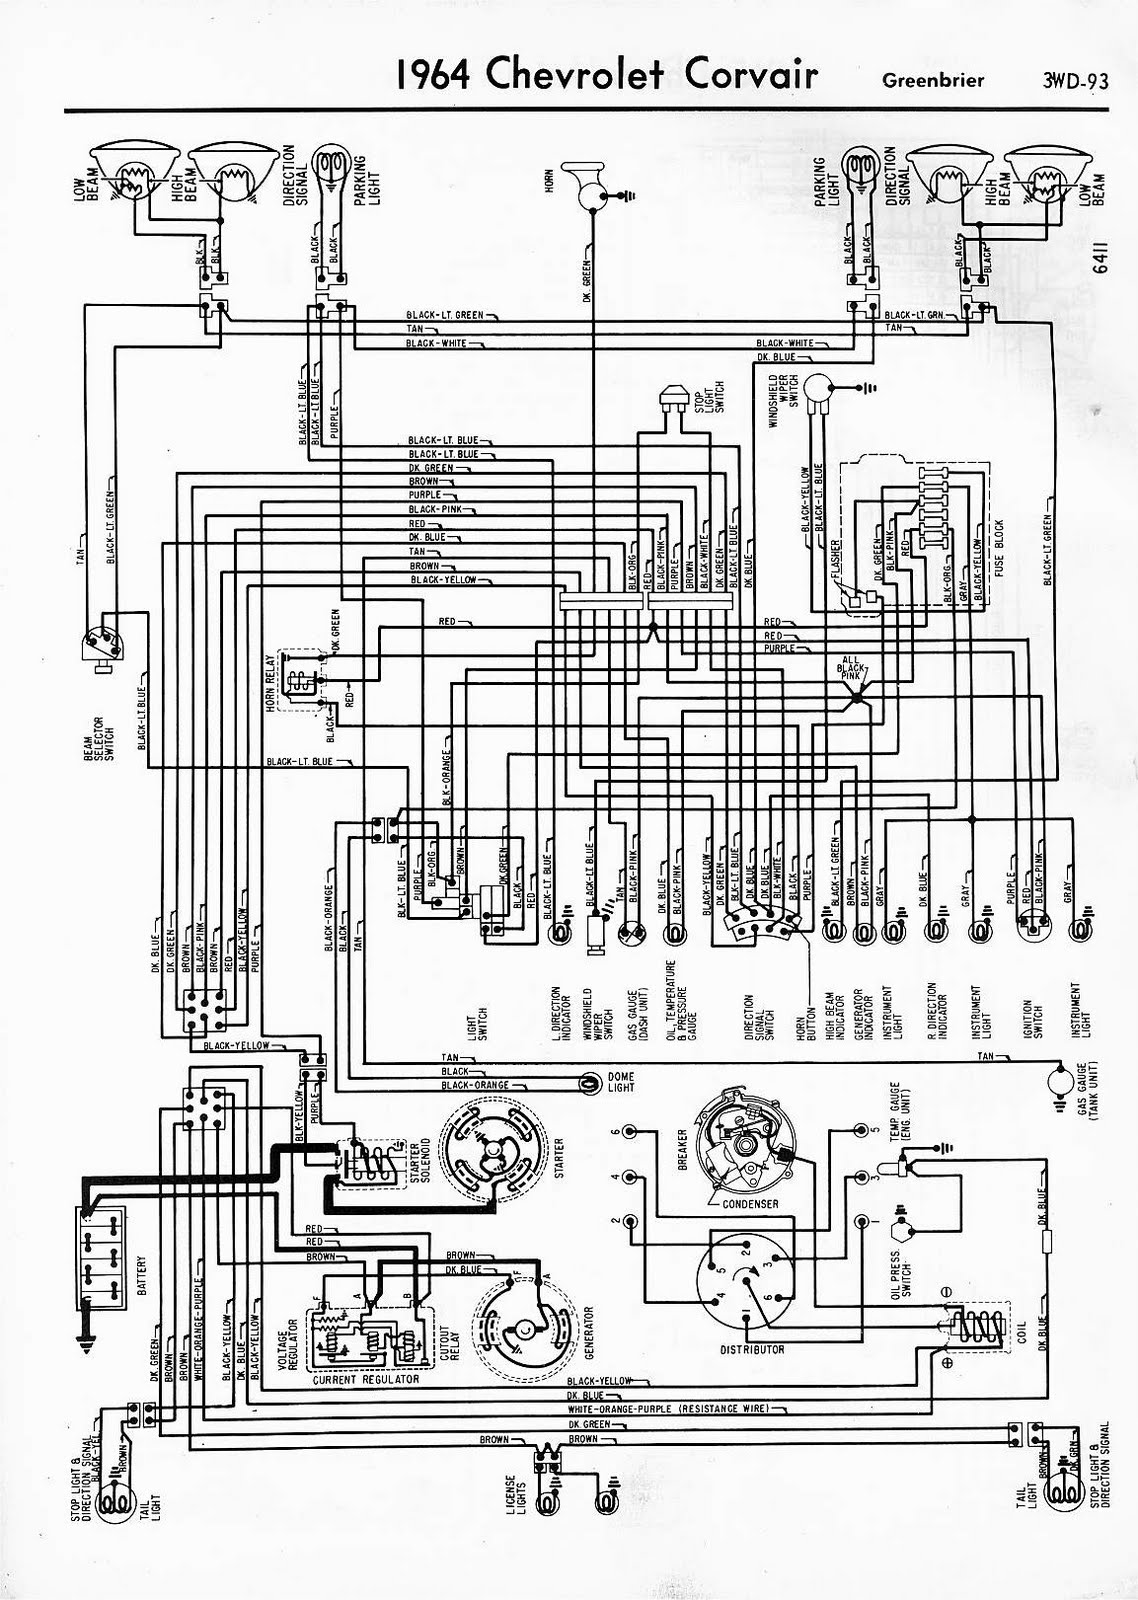 1976 Corvette Dash Wiring Diagram Electrical Diagrams For House 1964 Cluster Schematic Chevy Blog 1961 Corvair